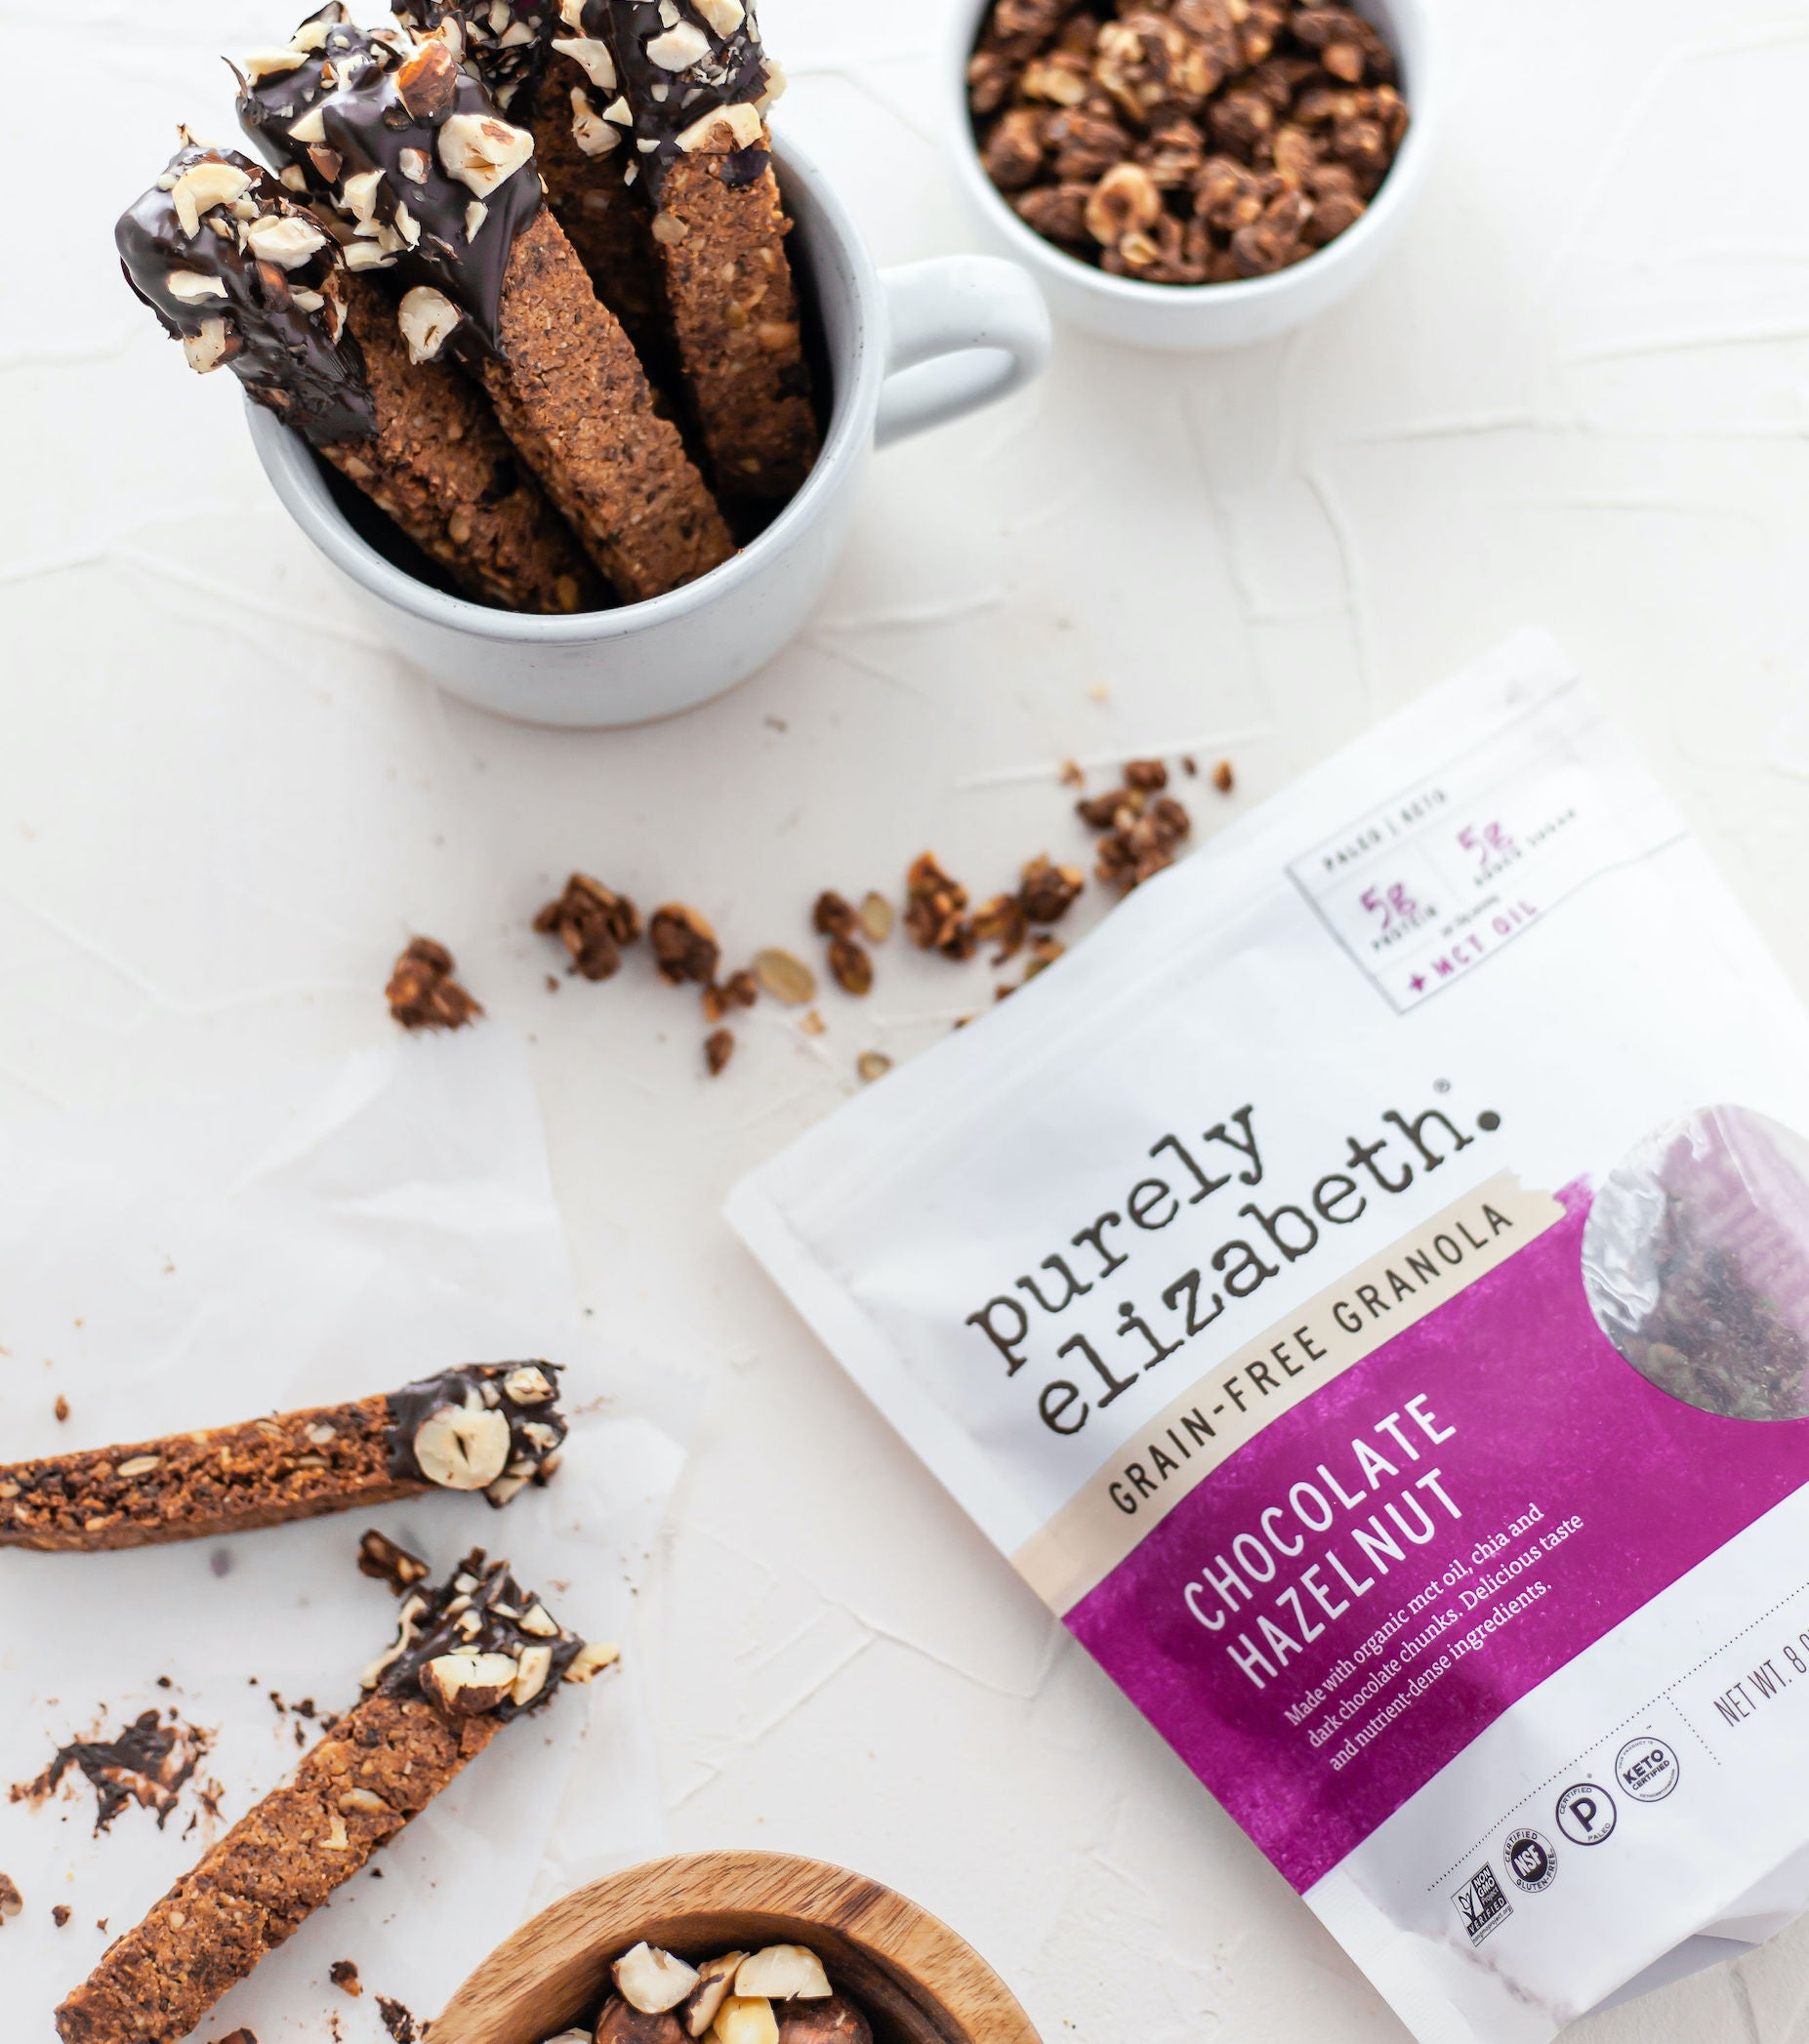 Chocolate Hazelnut Grain-Free Granola + MCT OIL